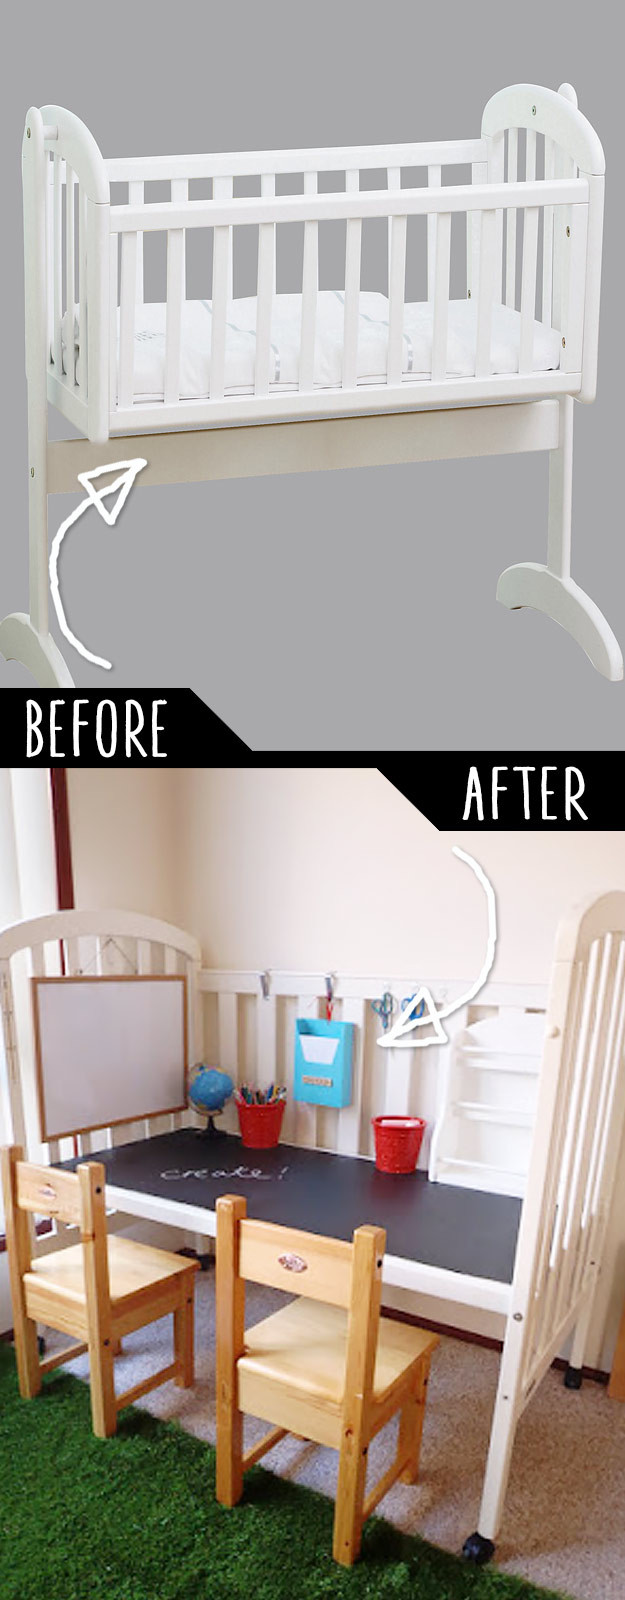 Diy Bedroom Decor It Yourself 39 Clever Diy Furniture Hacks